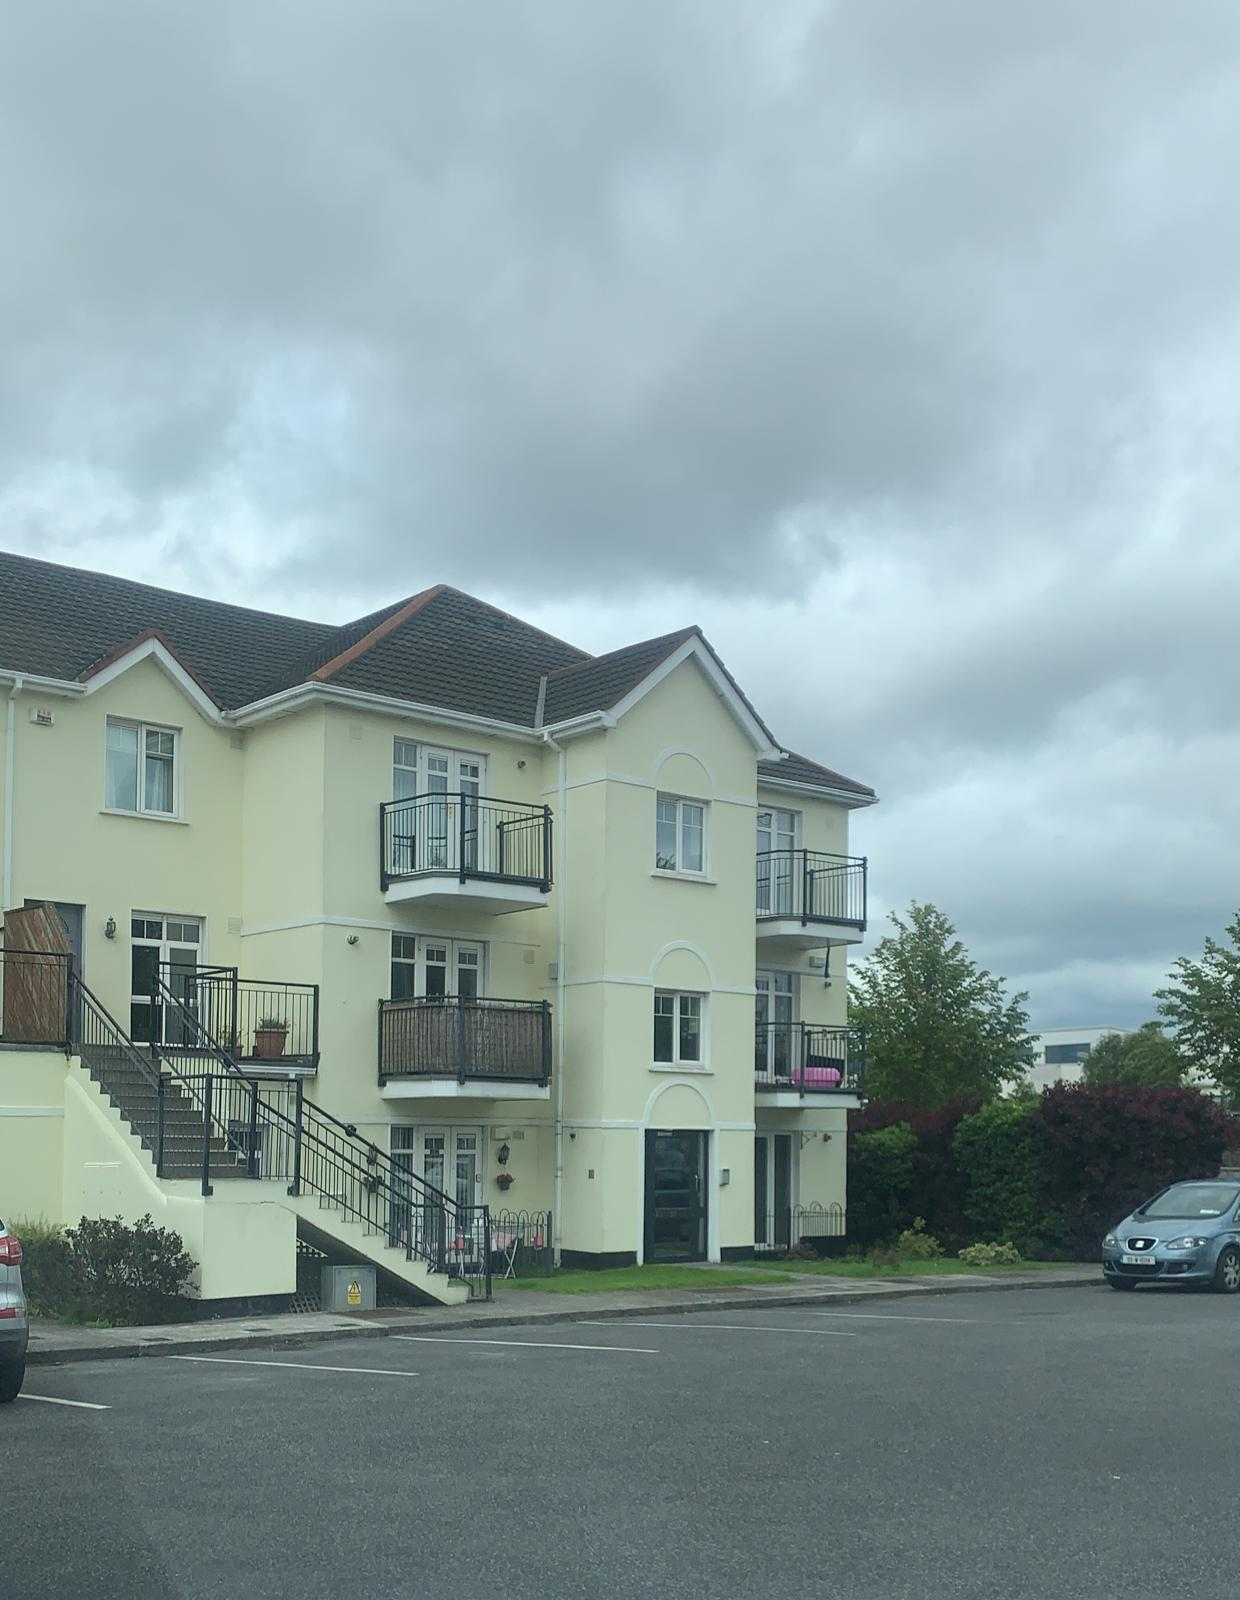 Holywell Crescent, Swords, Co. Dublin